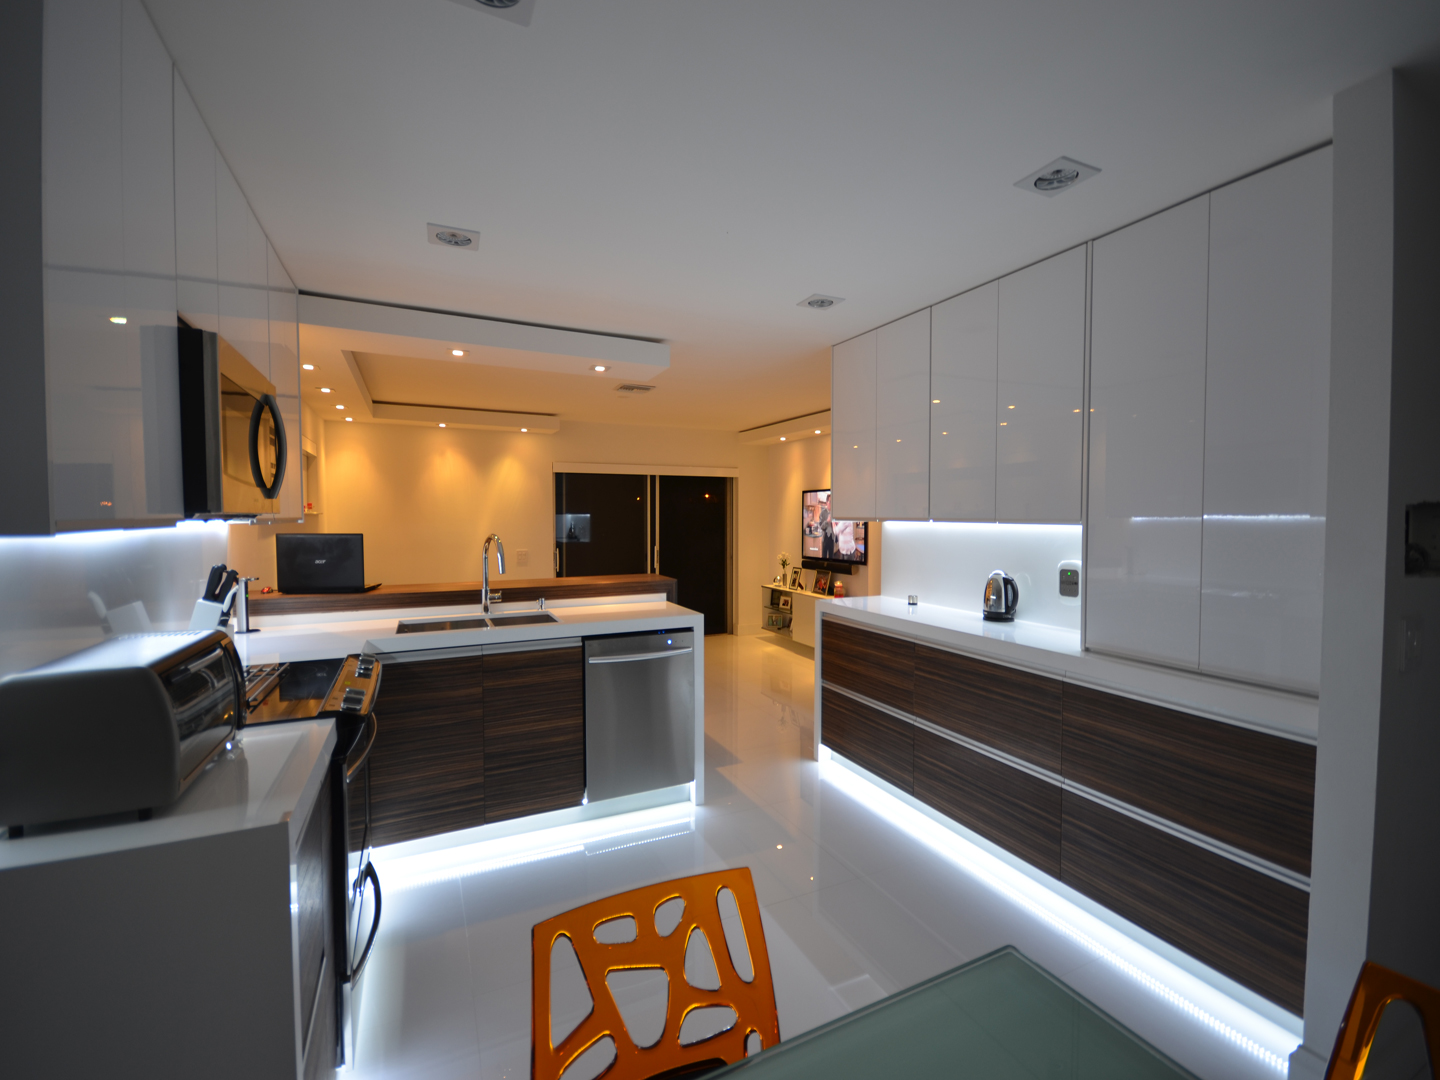 armadi custom furnitures custom design kitchens in miami custom kitchen miami archives custom modern furniture in